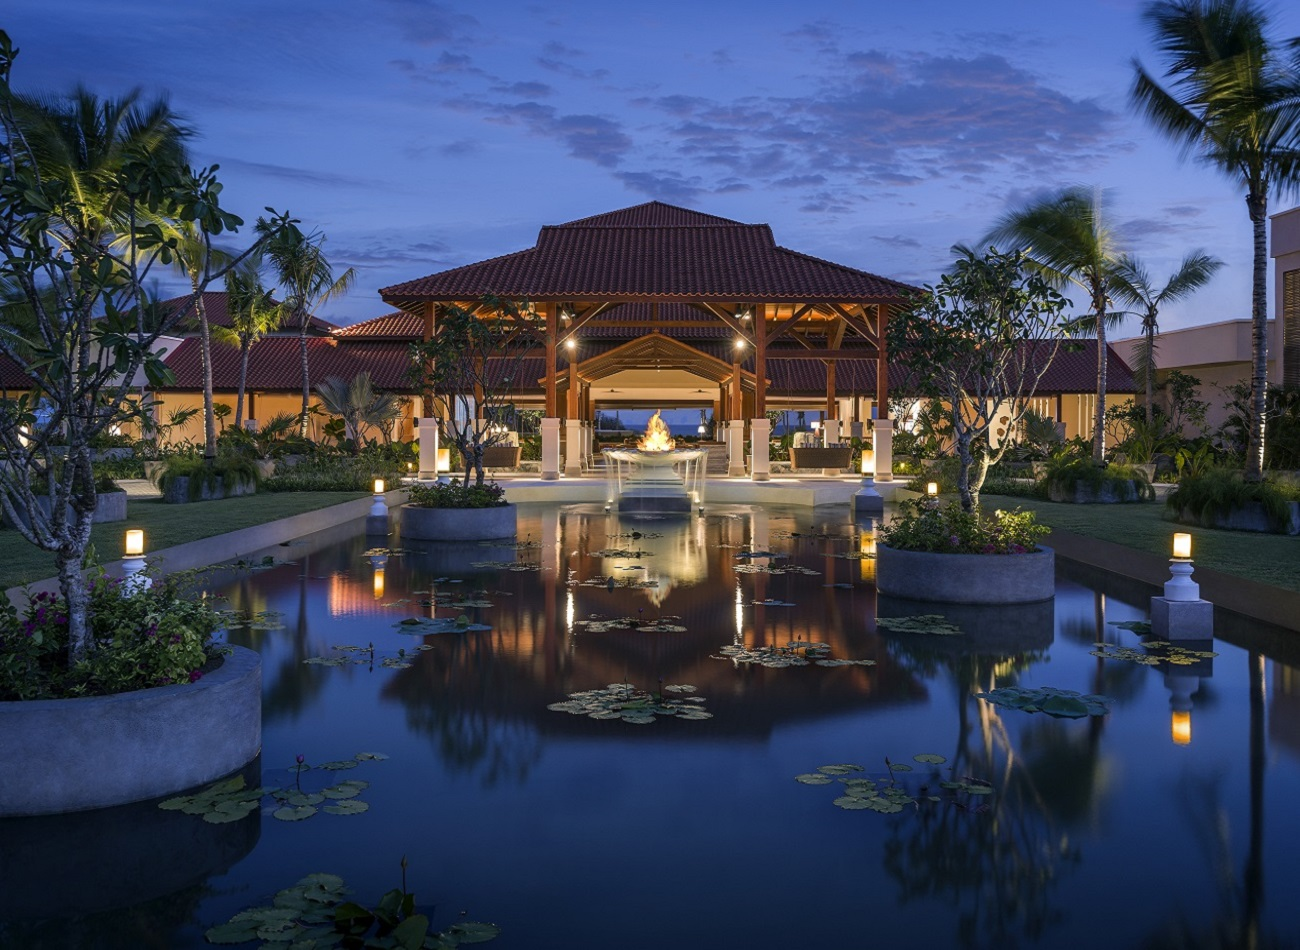 Sunset view of the exterior of Shangri-La Hambantota Resort & Spa